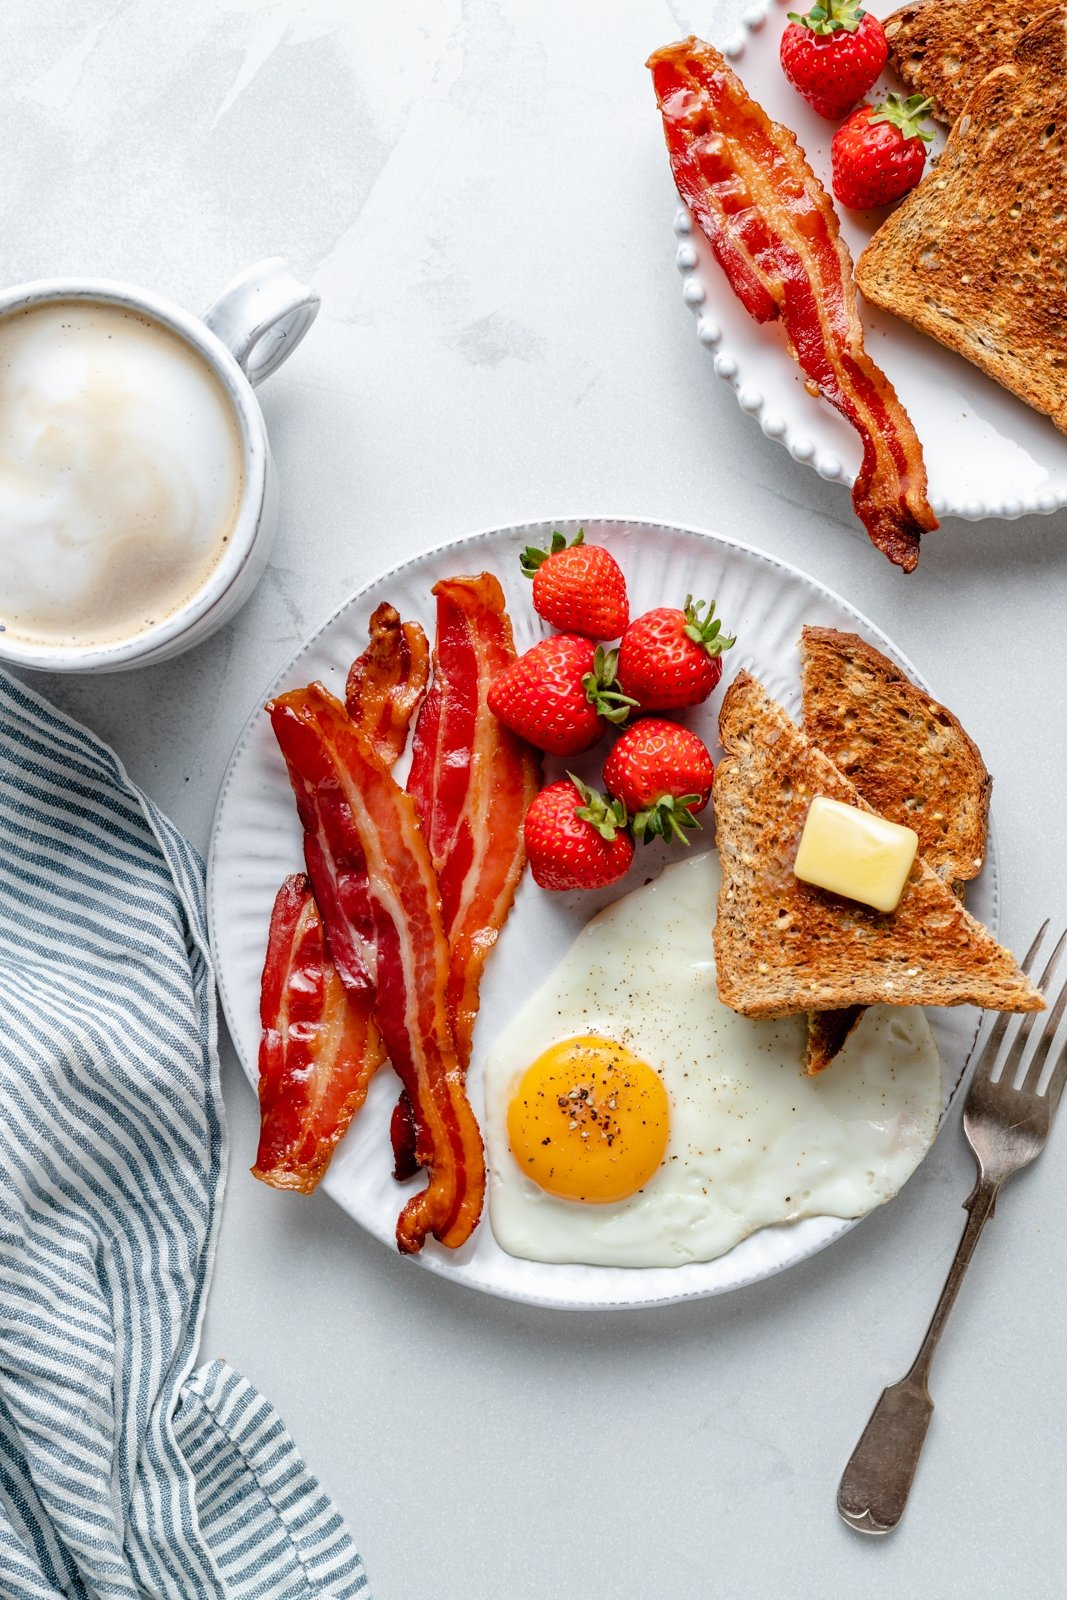 crispy bacon cooked in the oven on a plate with an egg, strawberries and toast